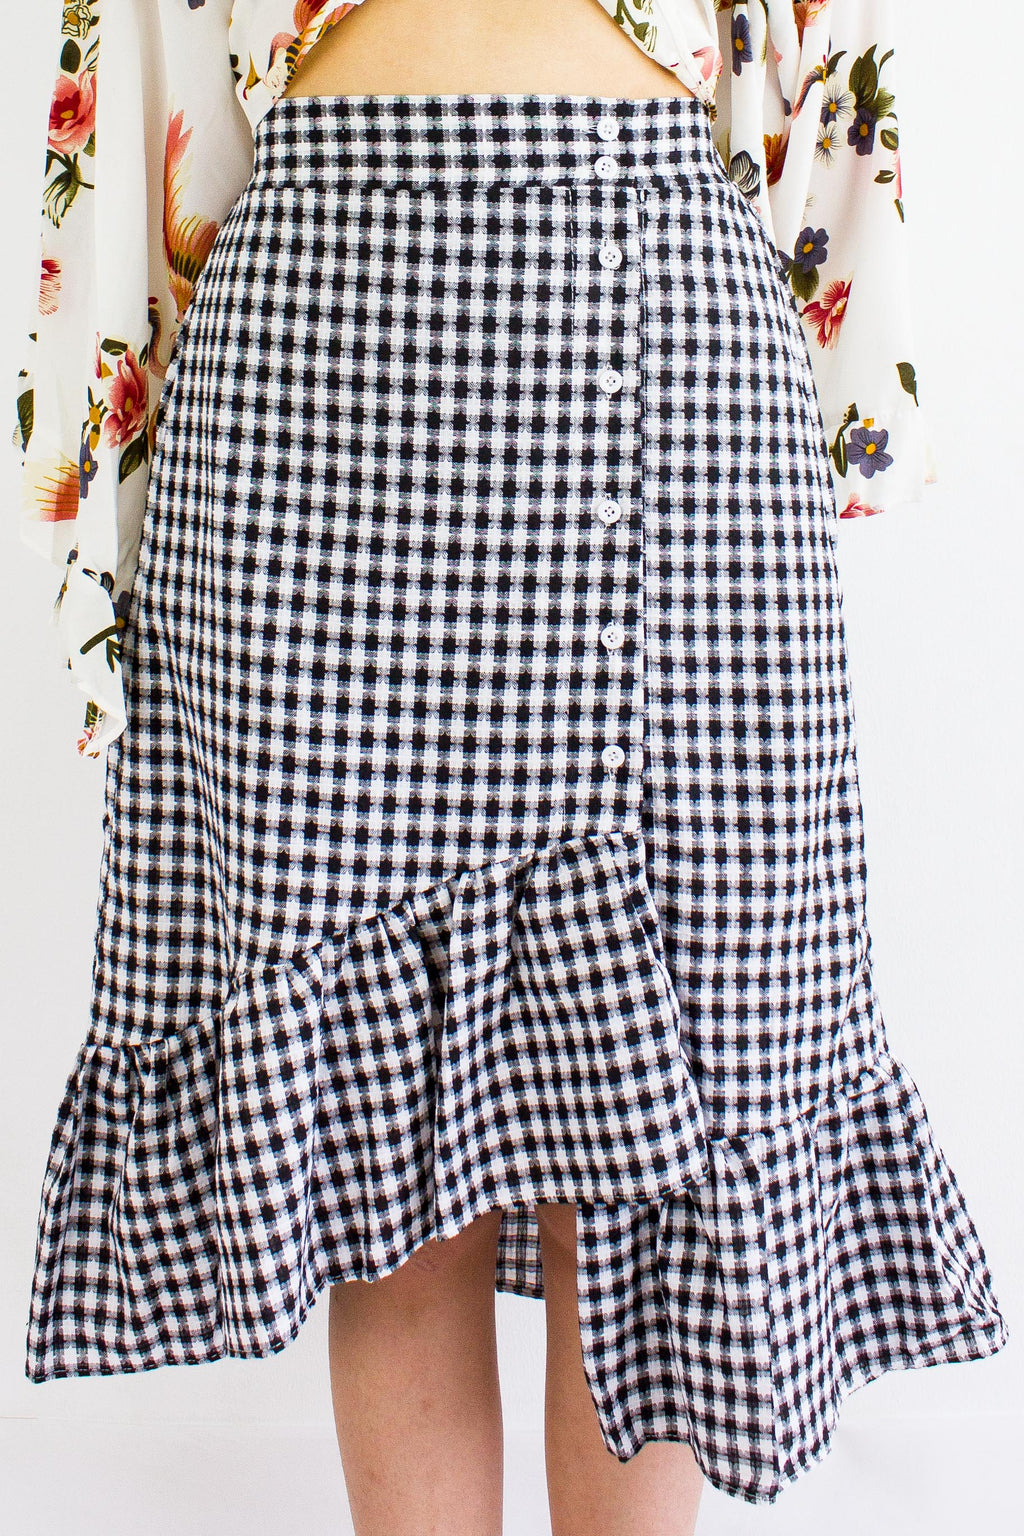 Gingham Go Ruffle Skirt in Black - BOTTOMS - Peep Boutique